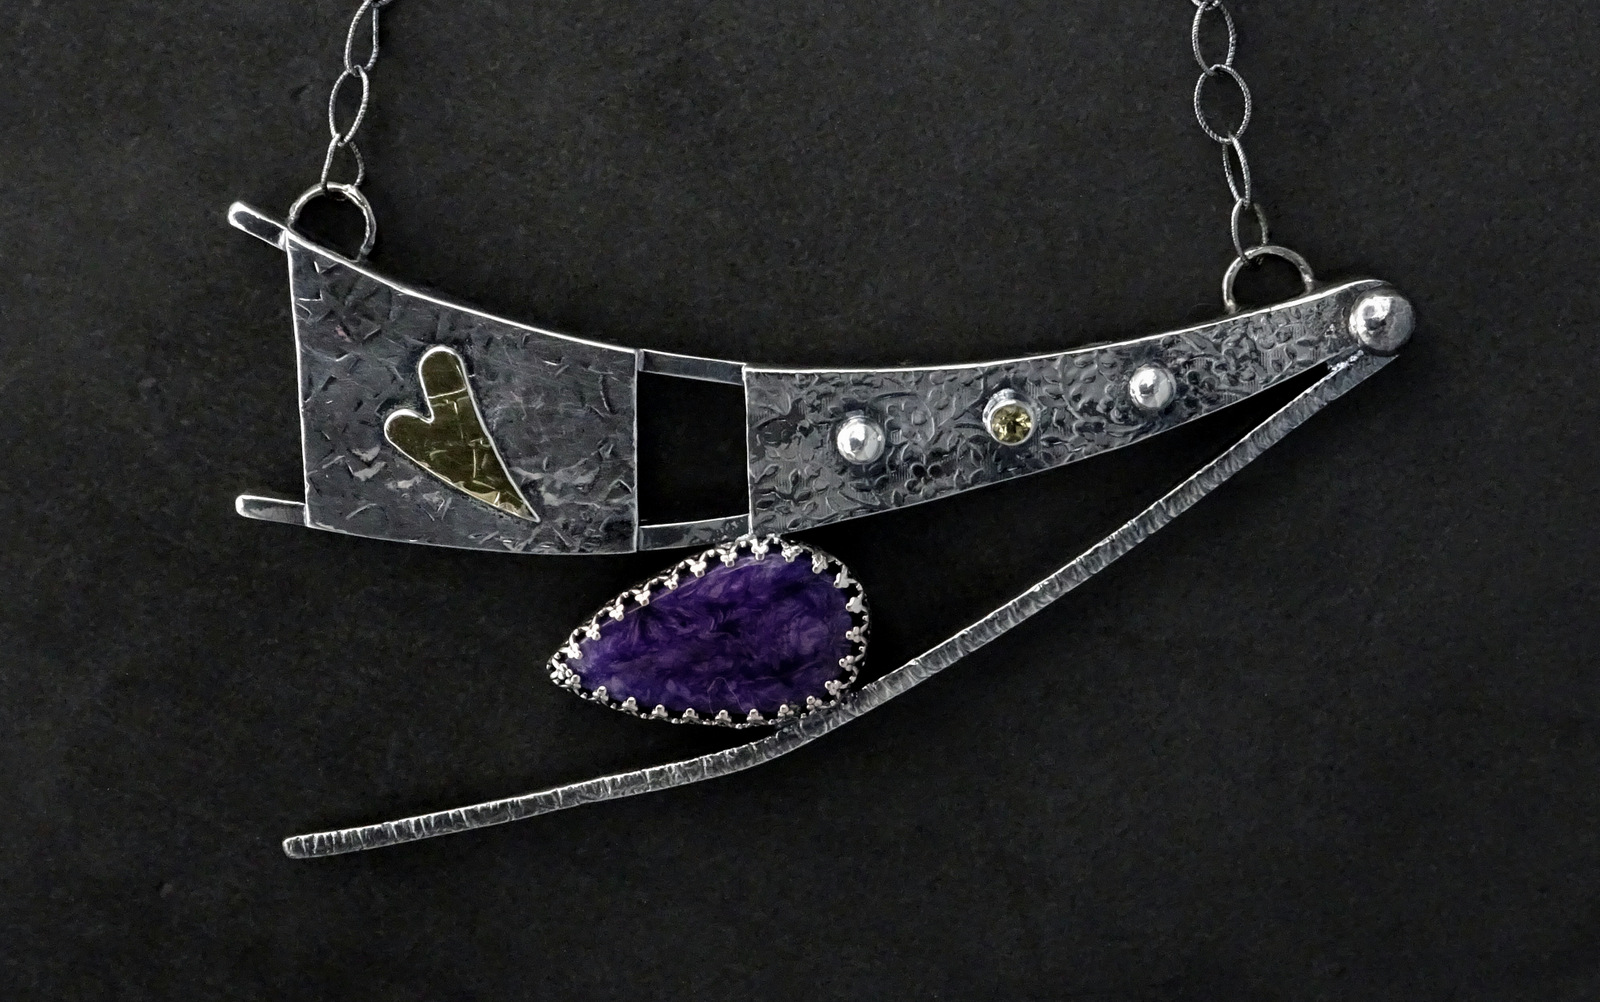 LARGE DANCING SPIRIT NECKLACE WITH PURPLE STONE,  Pendant - 4.5 x 2.75 inches, Chain Length - 23 inches